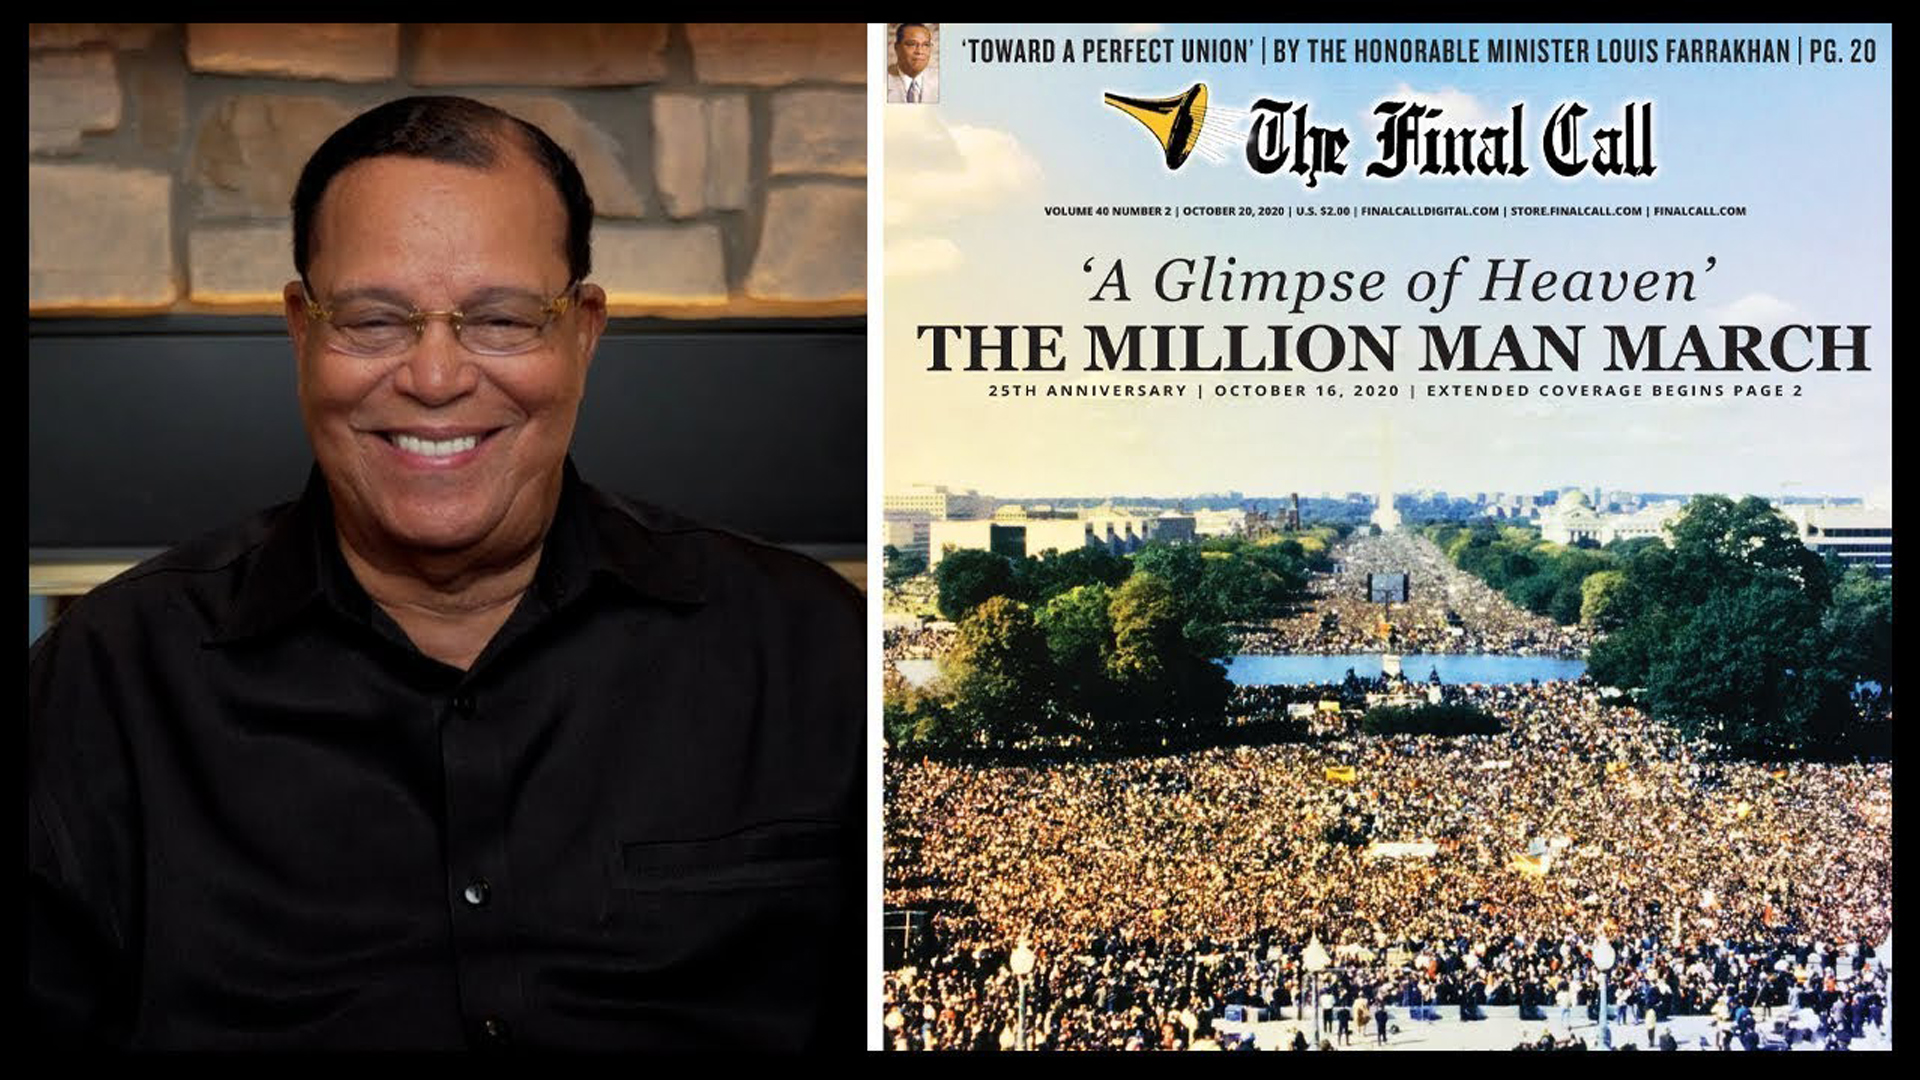 Minister Farrakhan reflects on why The Million Man March is a template